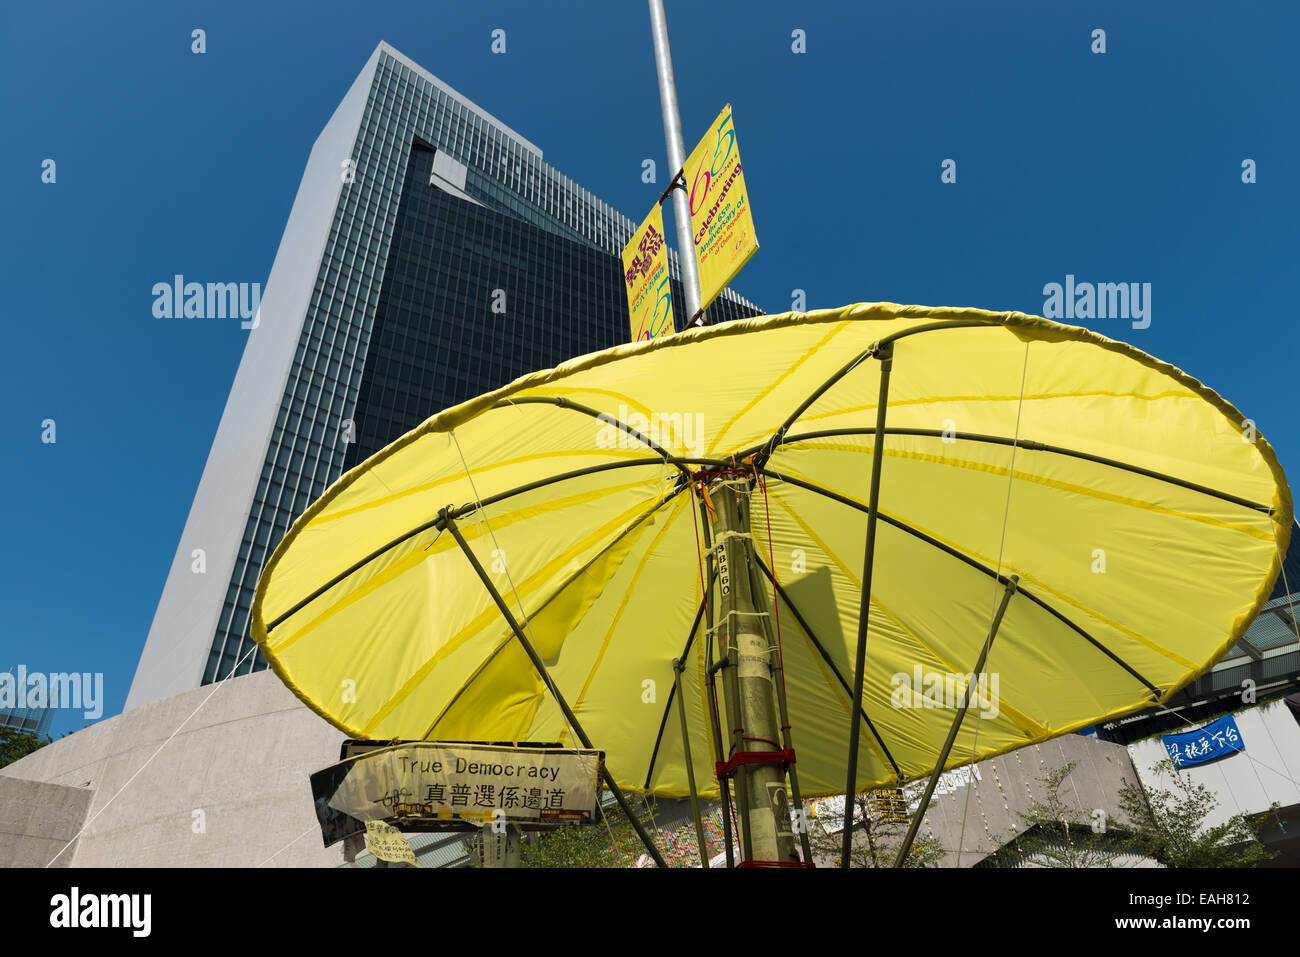 Hong Kong. 15th November, 2014. Protests: Students, pro democracy activists and other supporters of Occupy Central, - Stock Image